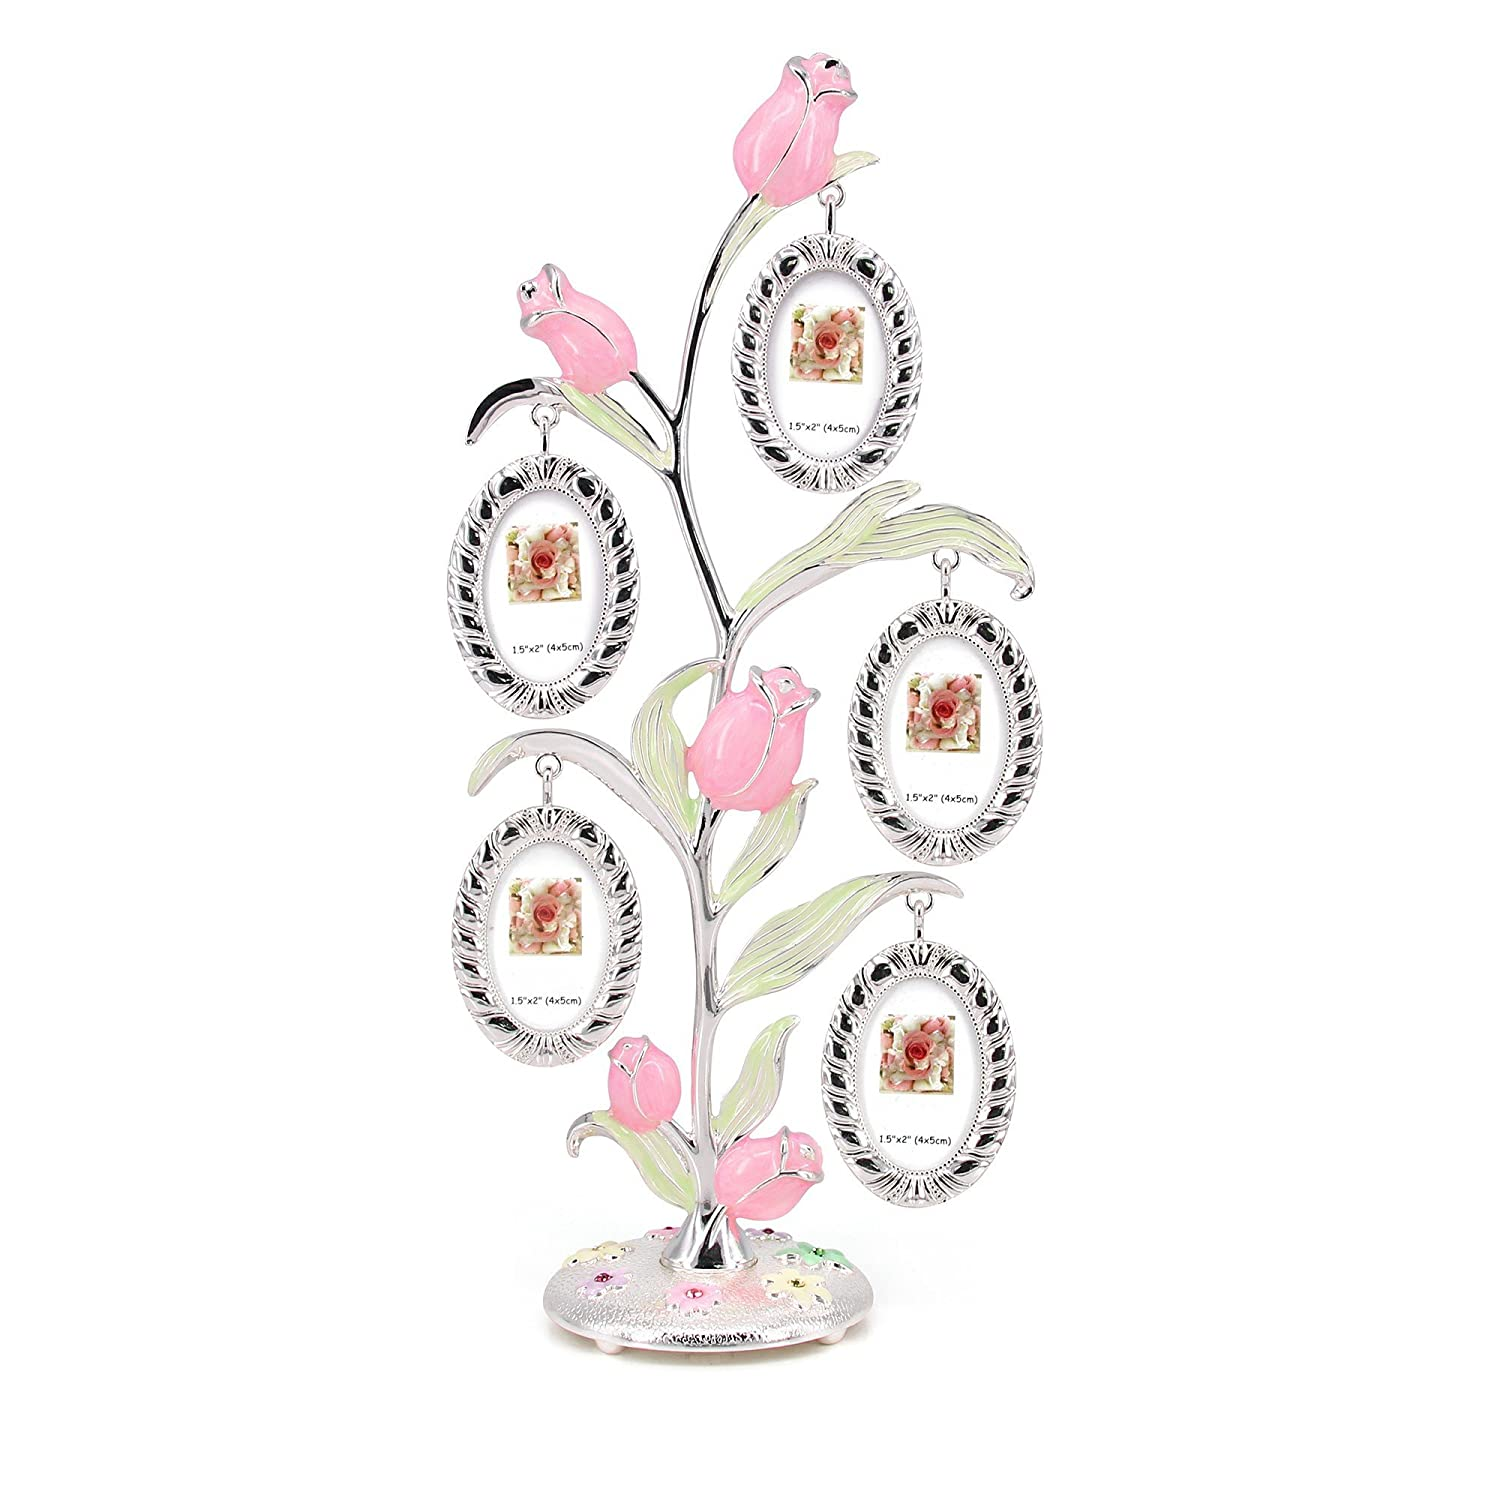 QTMY Metal Family Tree Rose Flower with 5 Hanging Picture Frames Collage Desk Ornaments